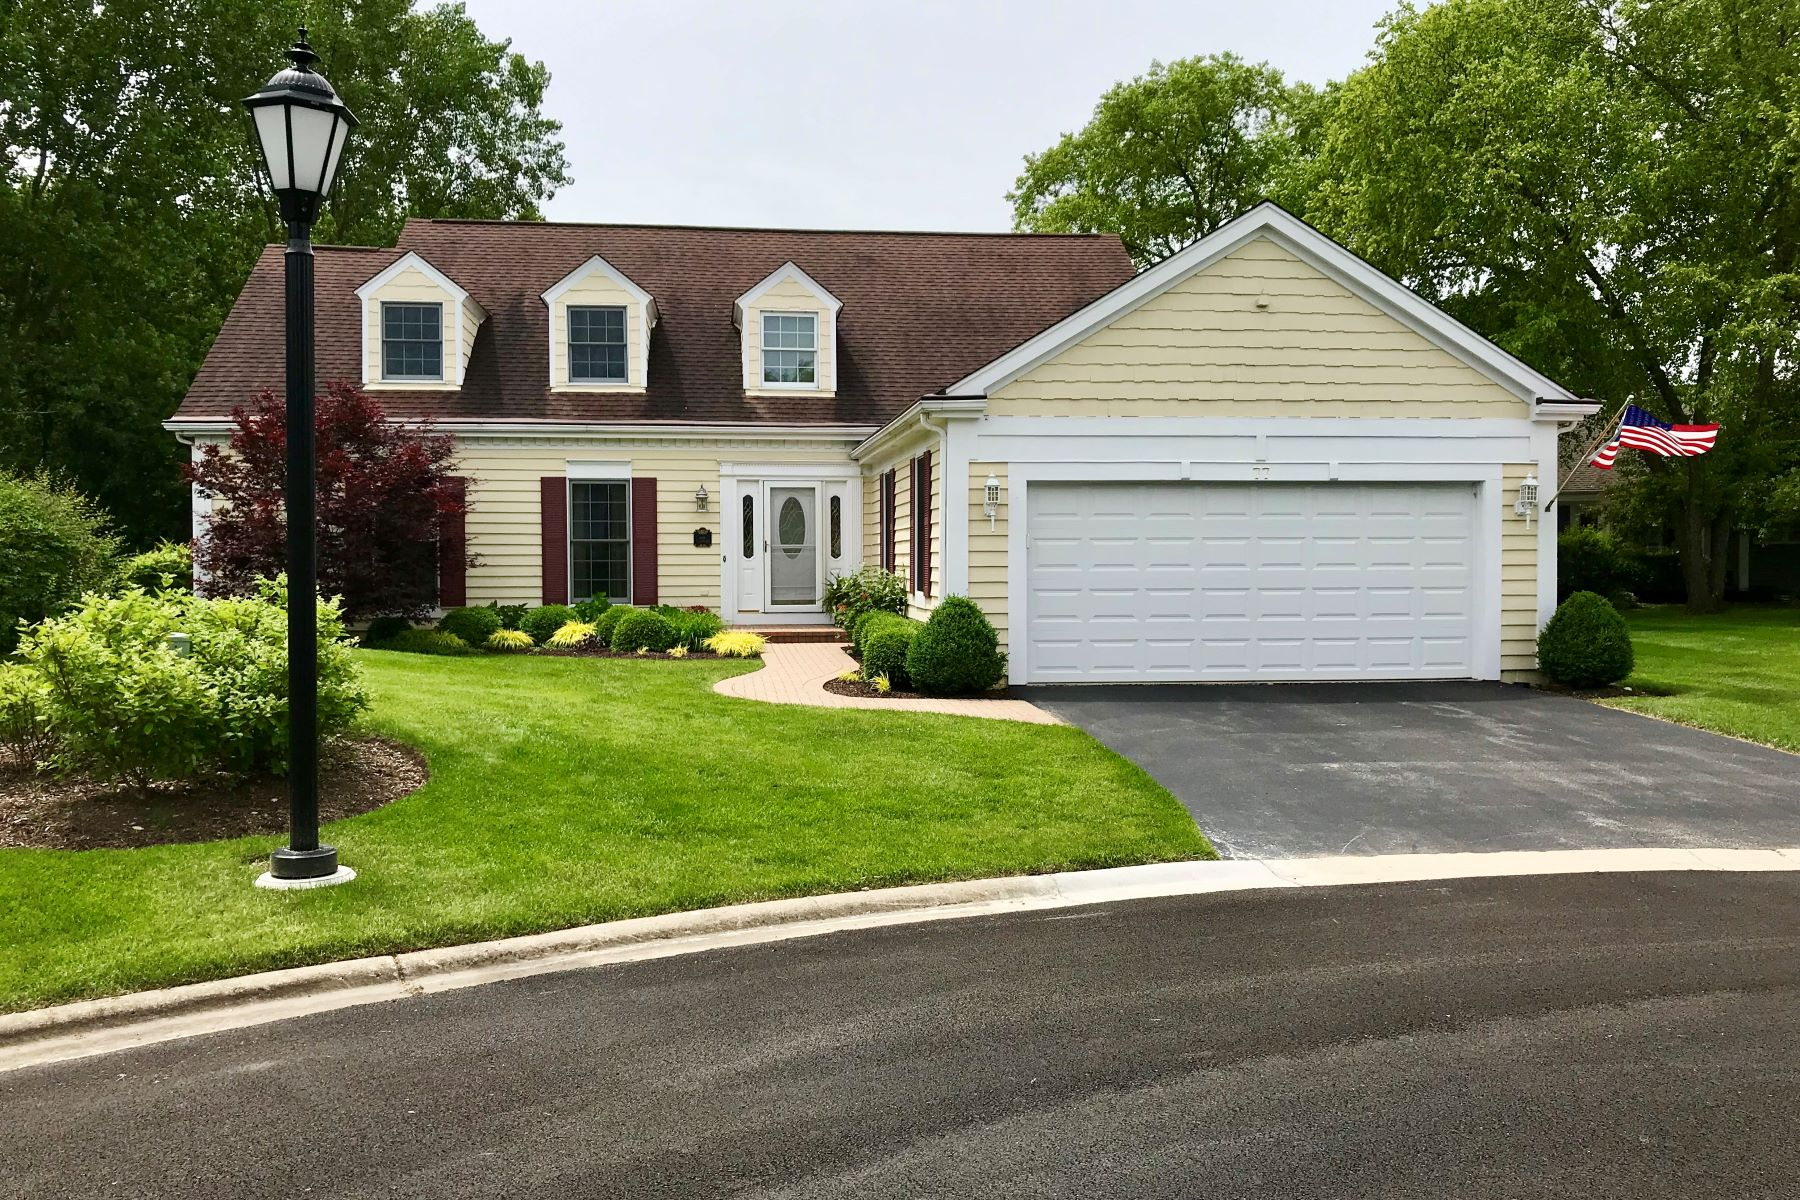 Single Family Homes for Active at Finest Gated Community 77 Lochleven Lane Inverness, Illinois 60067 United States